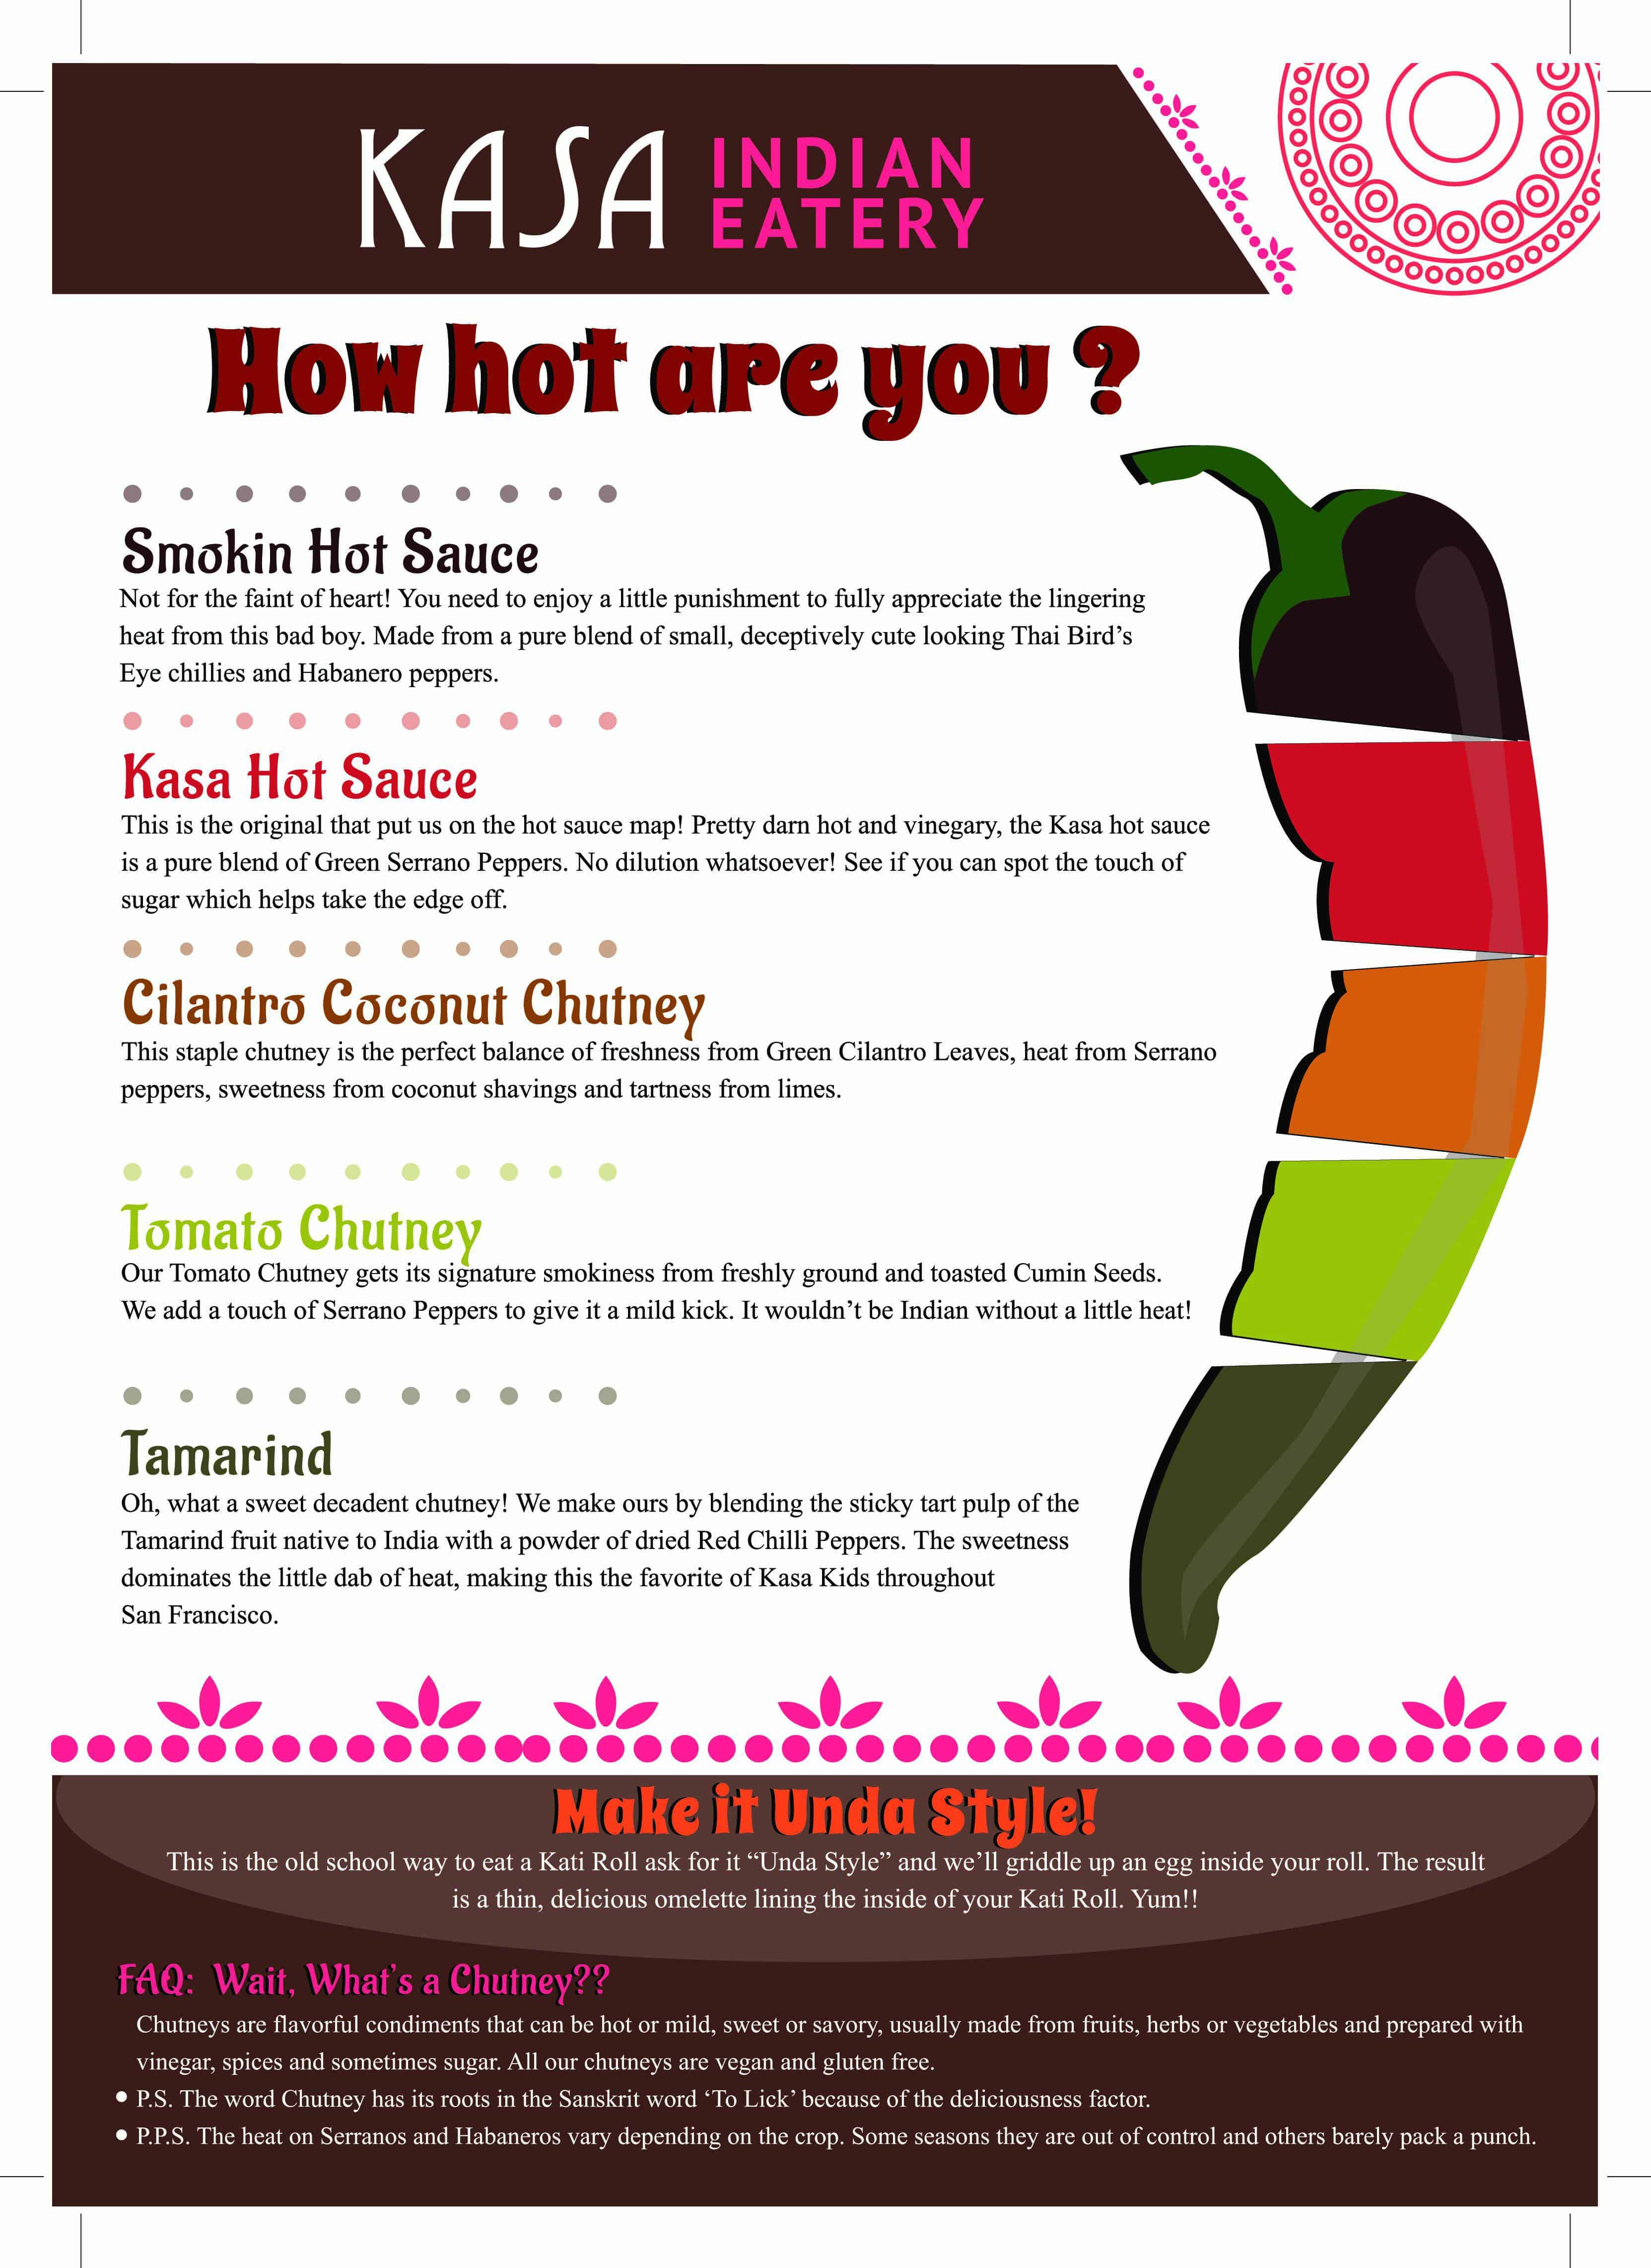 Kasa Indian Eatery - How Hot are you?